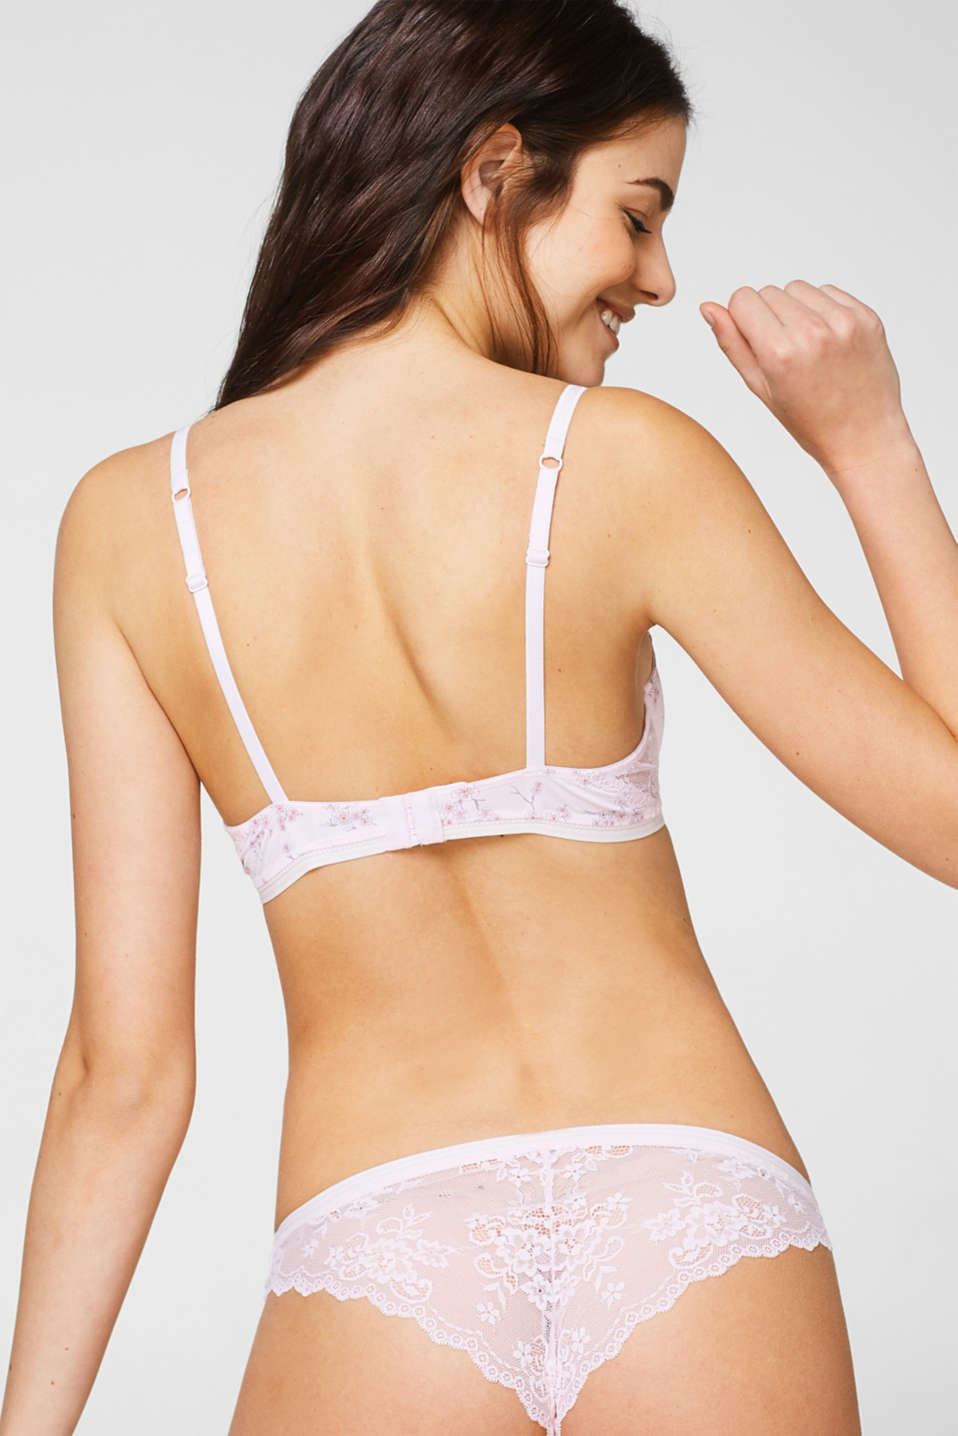 Unpadded bra with a cherry blossom print